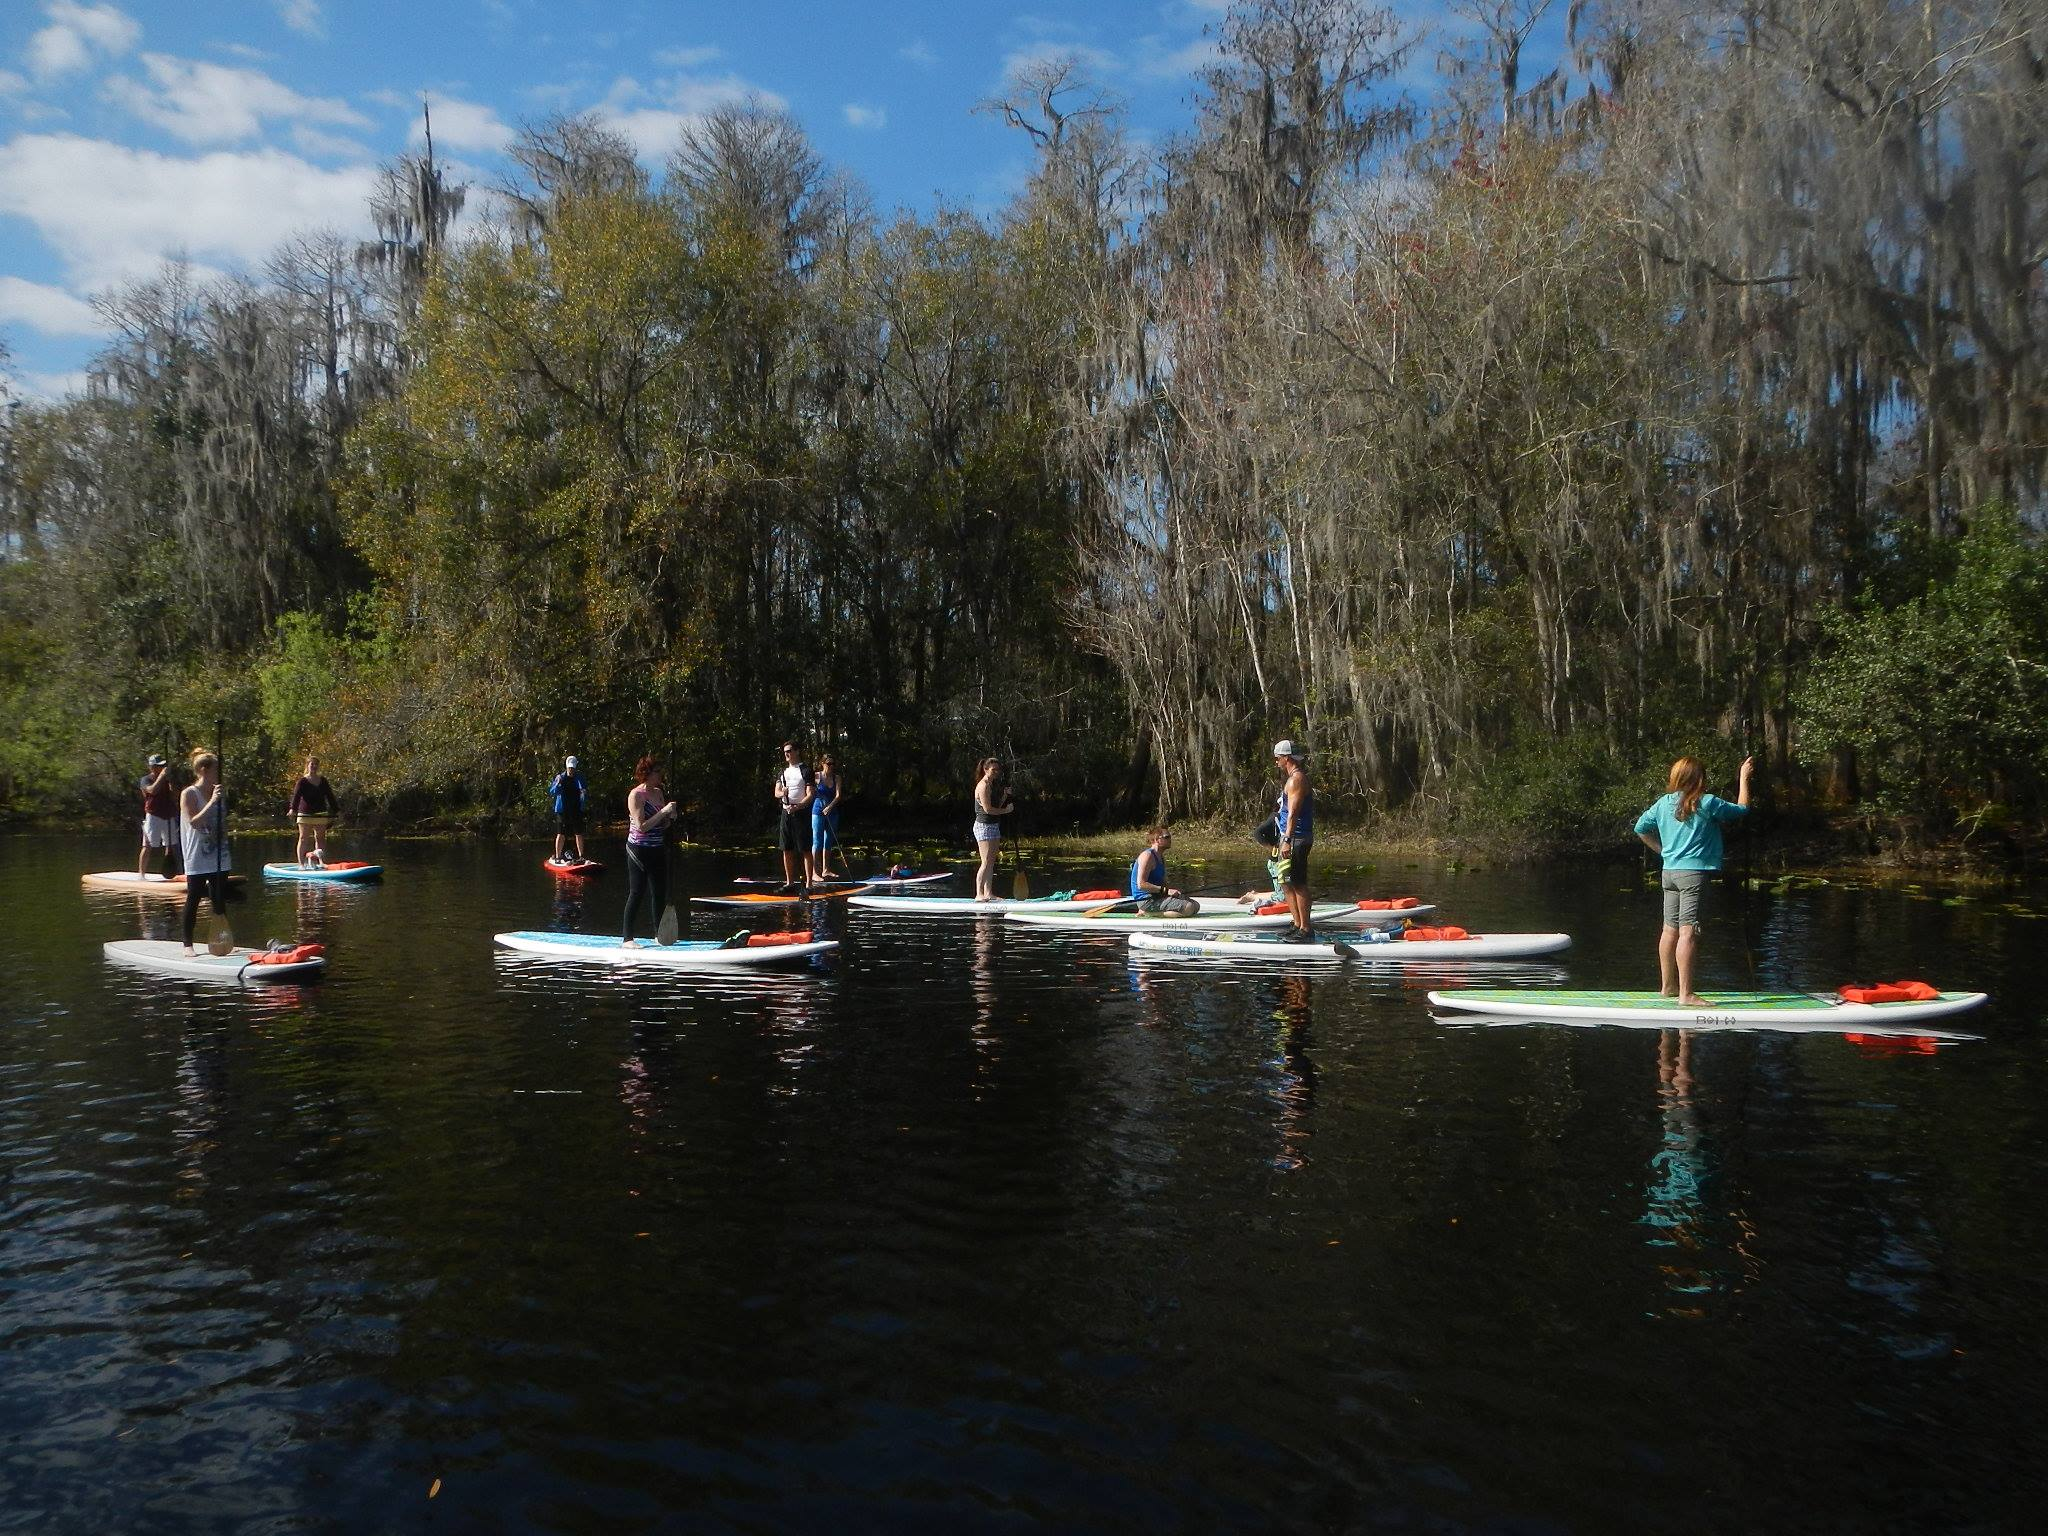 Group tours to Paddle Board in Kissimmee near Orlando Attractions